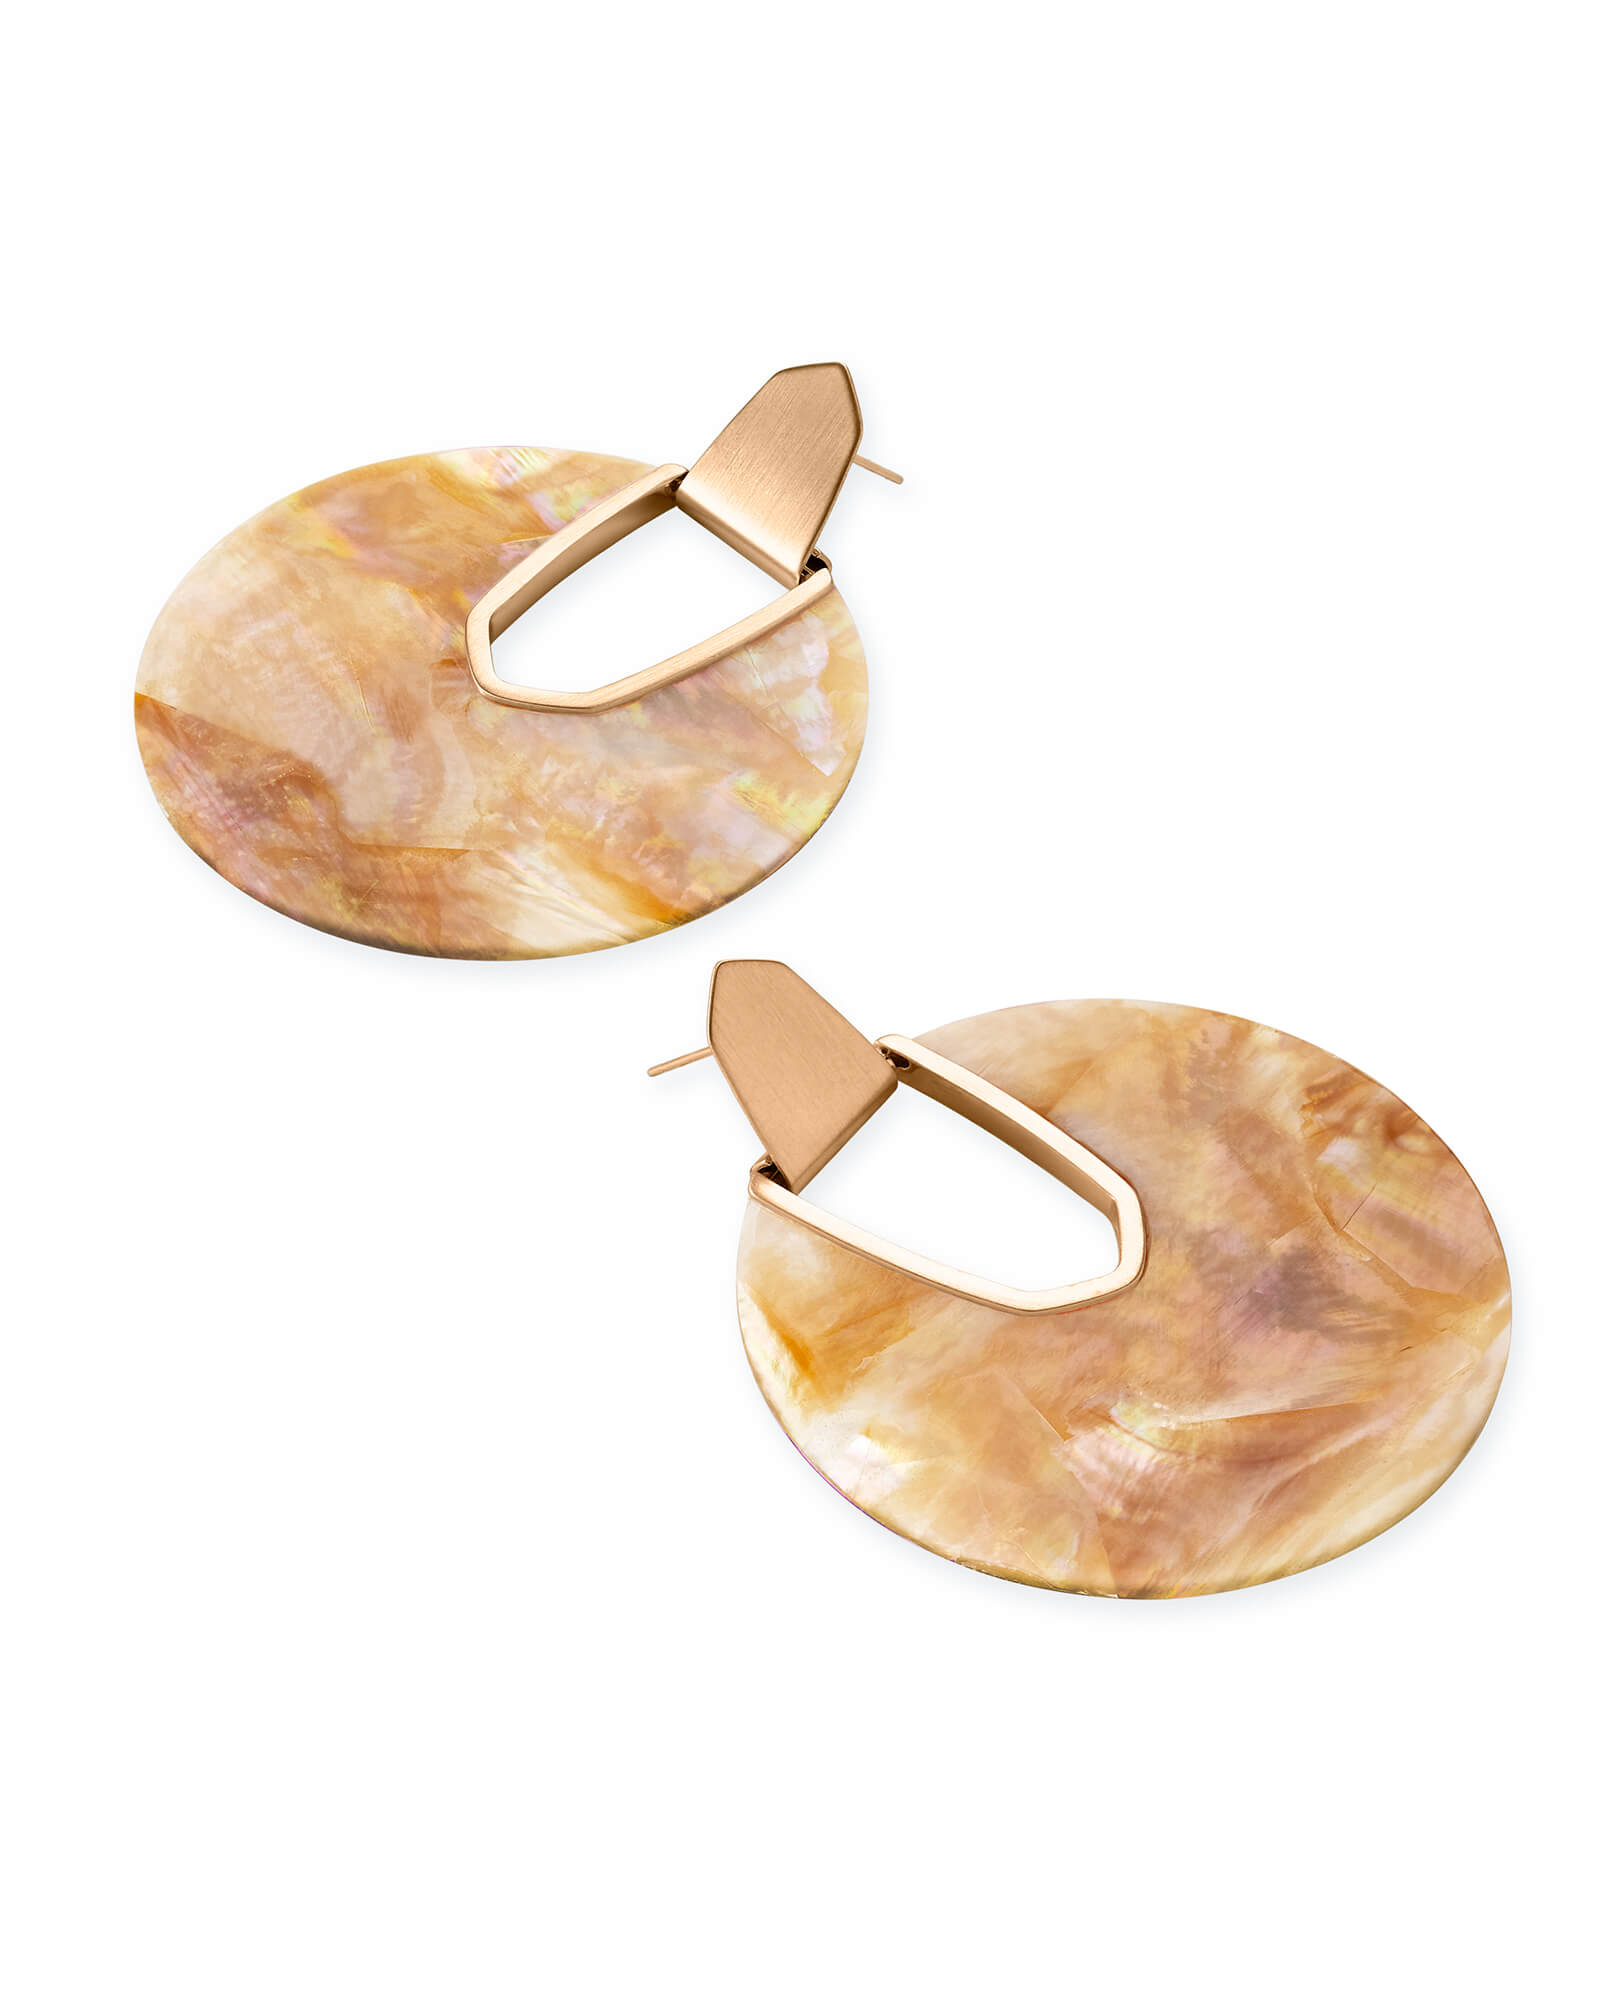 Diane Rose Gold Statement Earrings in Brown Mother of Pearl